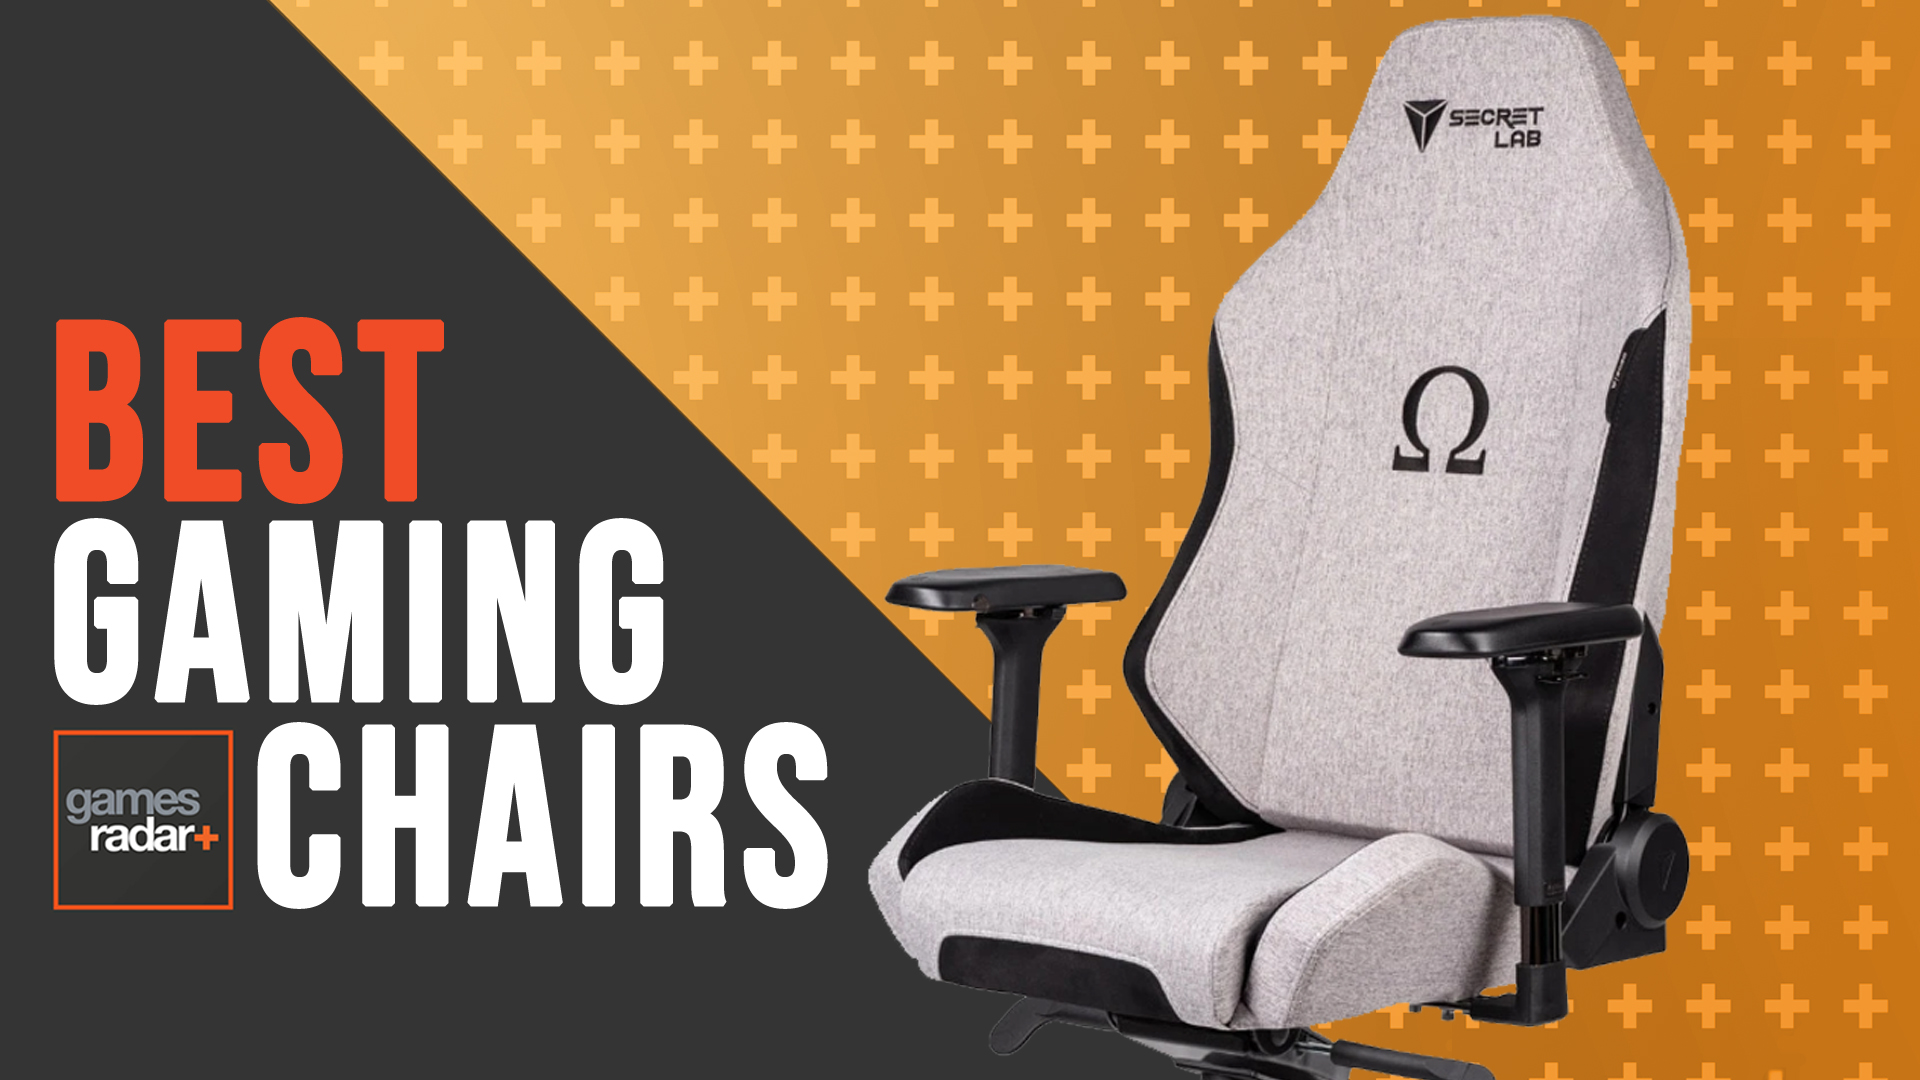 The best gaming chairs in 2020 | GamesRadar+